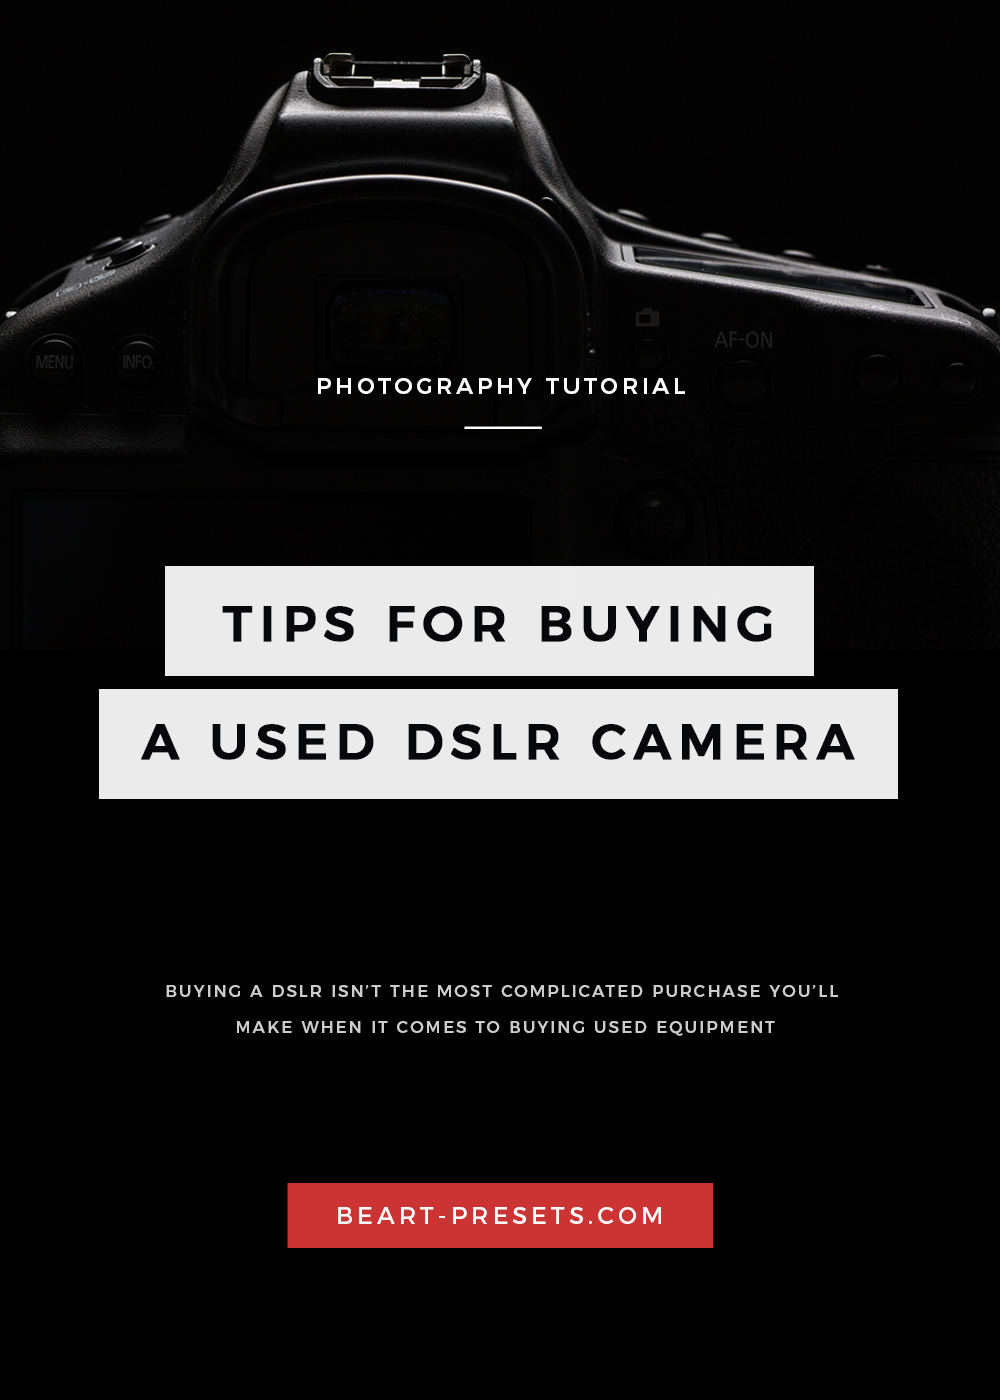 TIPS FOR BUYING A USED DSLR CAMERA